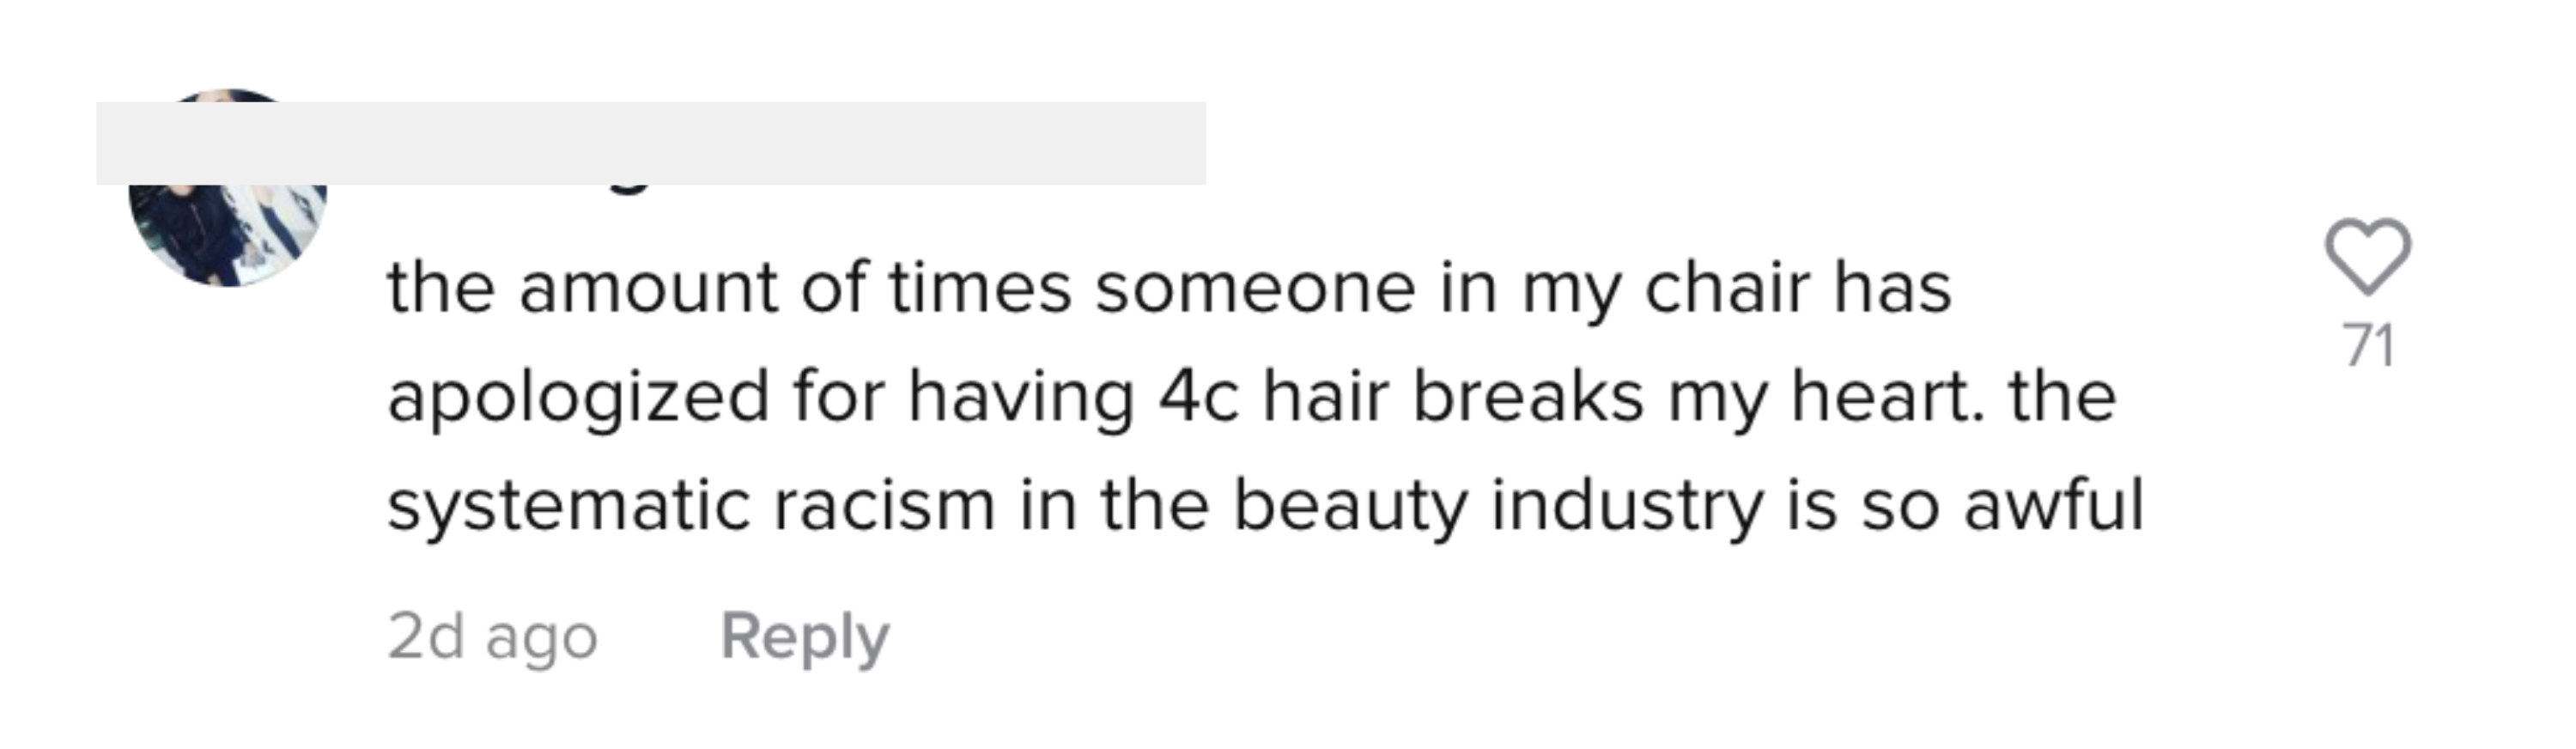 """One TikTok user wrote, """"the amount of times someone in my chair has apologized for having 4c hair breaks my heart. the systemic racism in the beauty industry is so awful"""""""